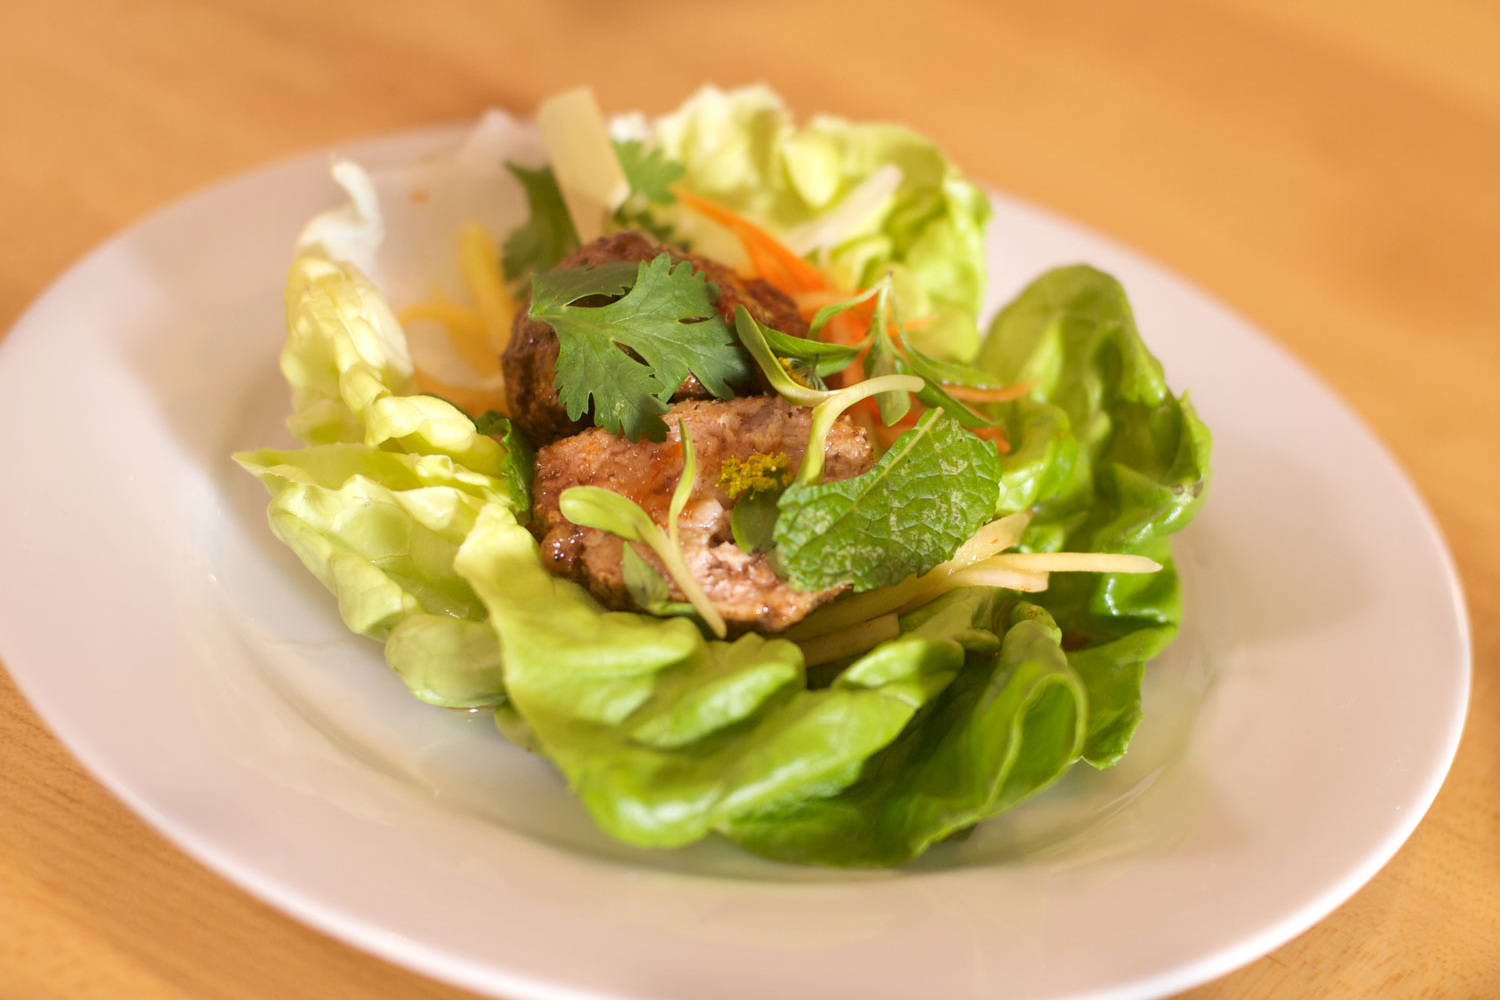 ktk_food_salad5.jpg